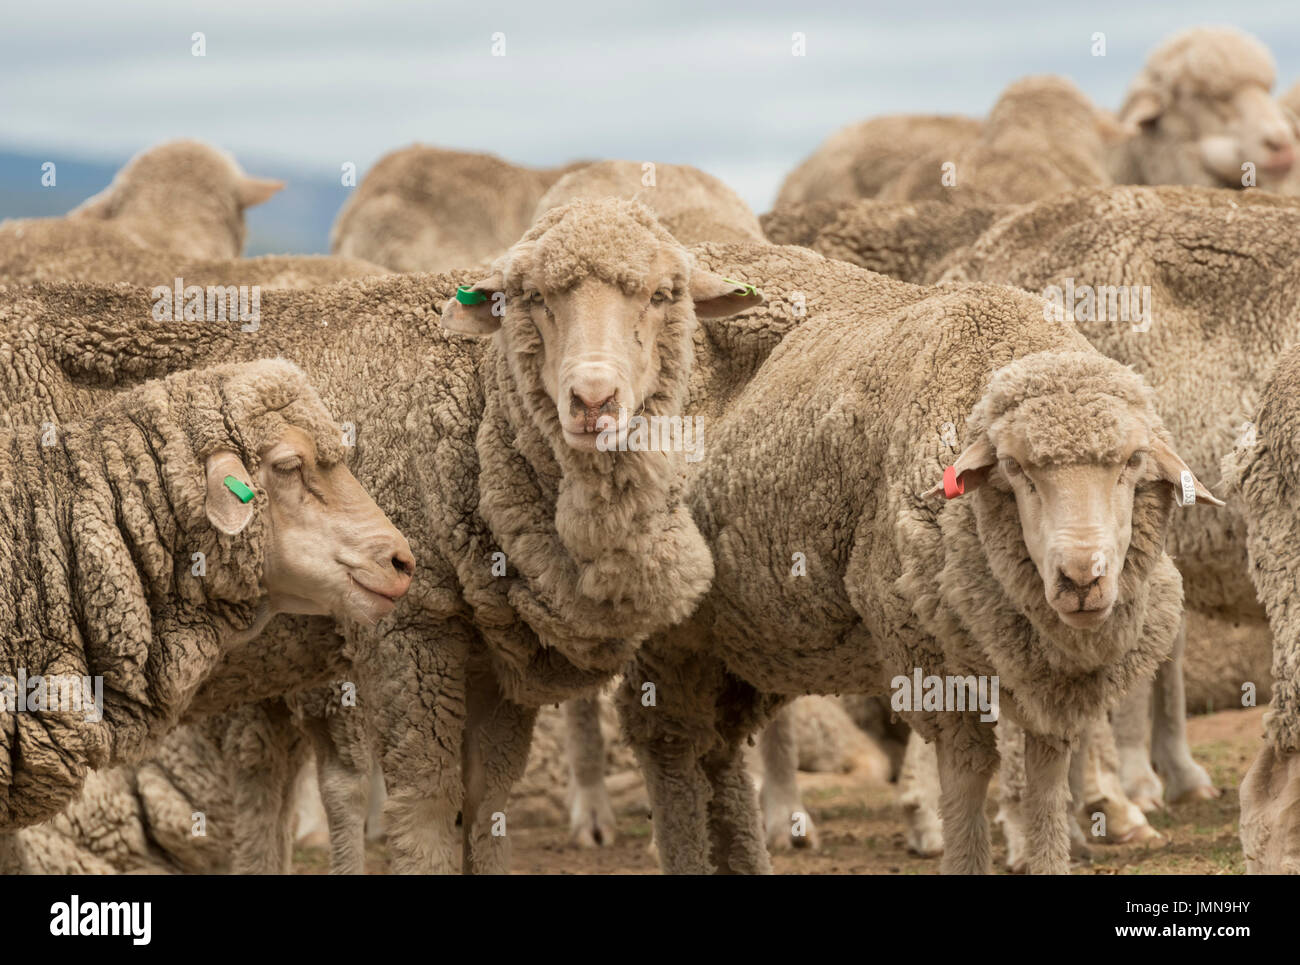 Australian Merino Sheep grazing in rural New South Wales,Australia. - Stock Image